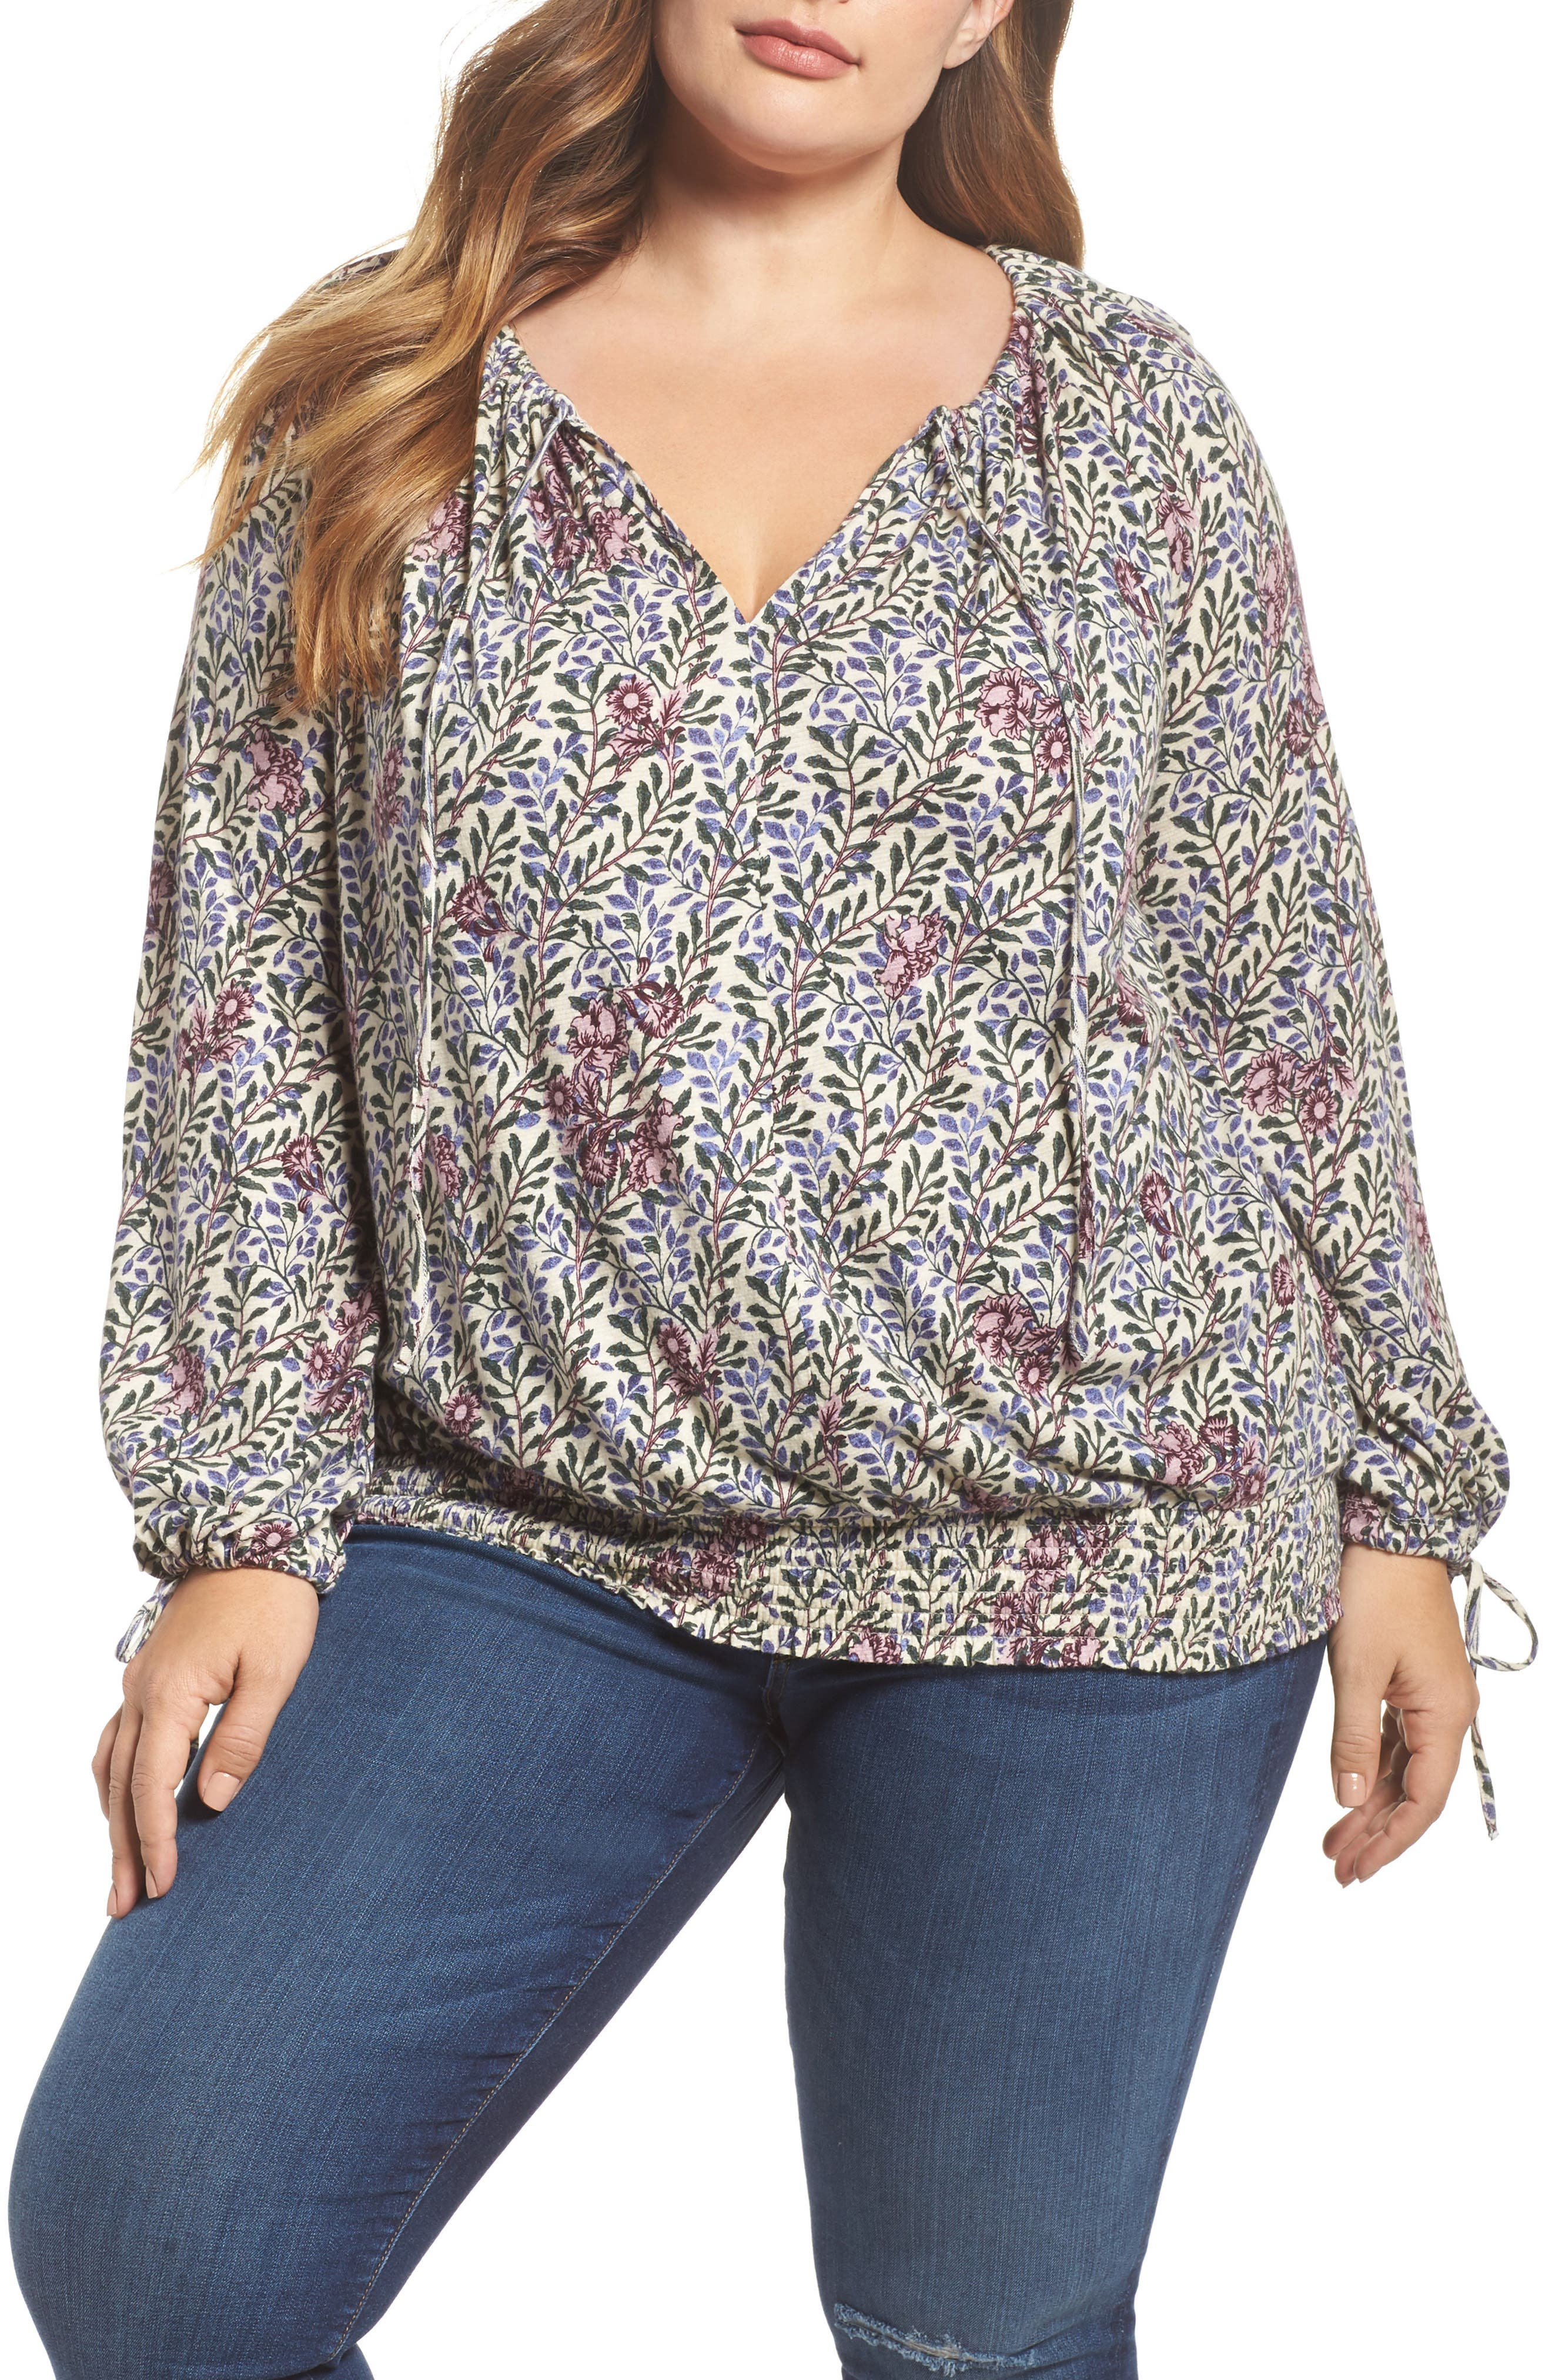 Main Image - Lucky Brand Print Smocked Peasant Top (Plus Size)